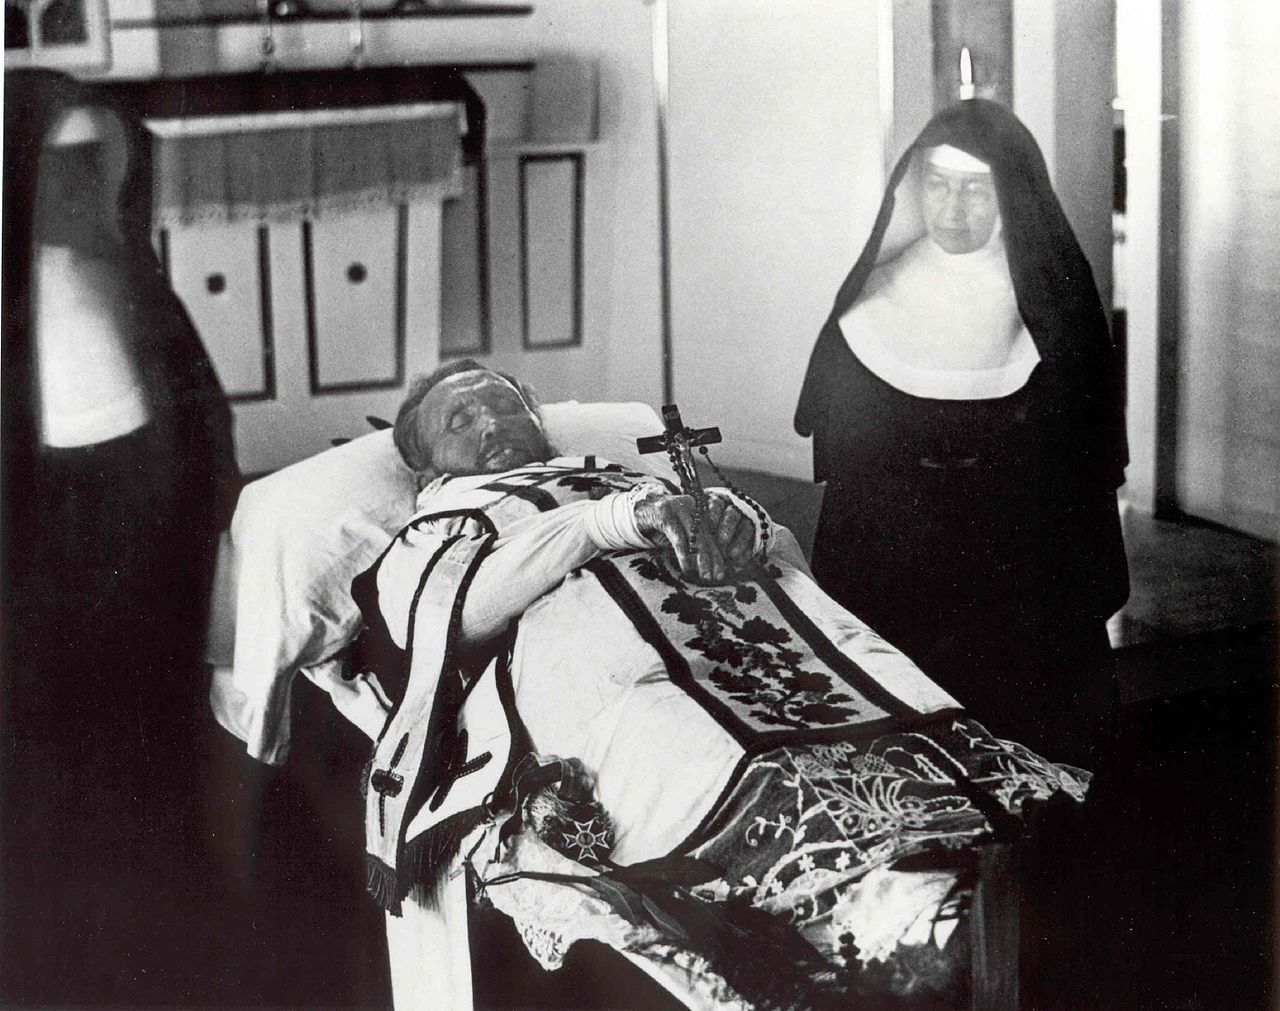 1280px-Father_Damien_on_his_funeral_bier_with_Mother_Marianne_Cope_by_his_side